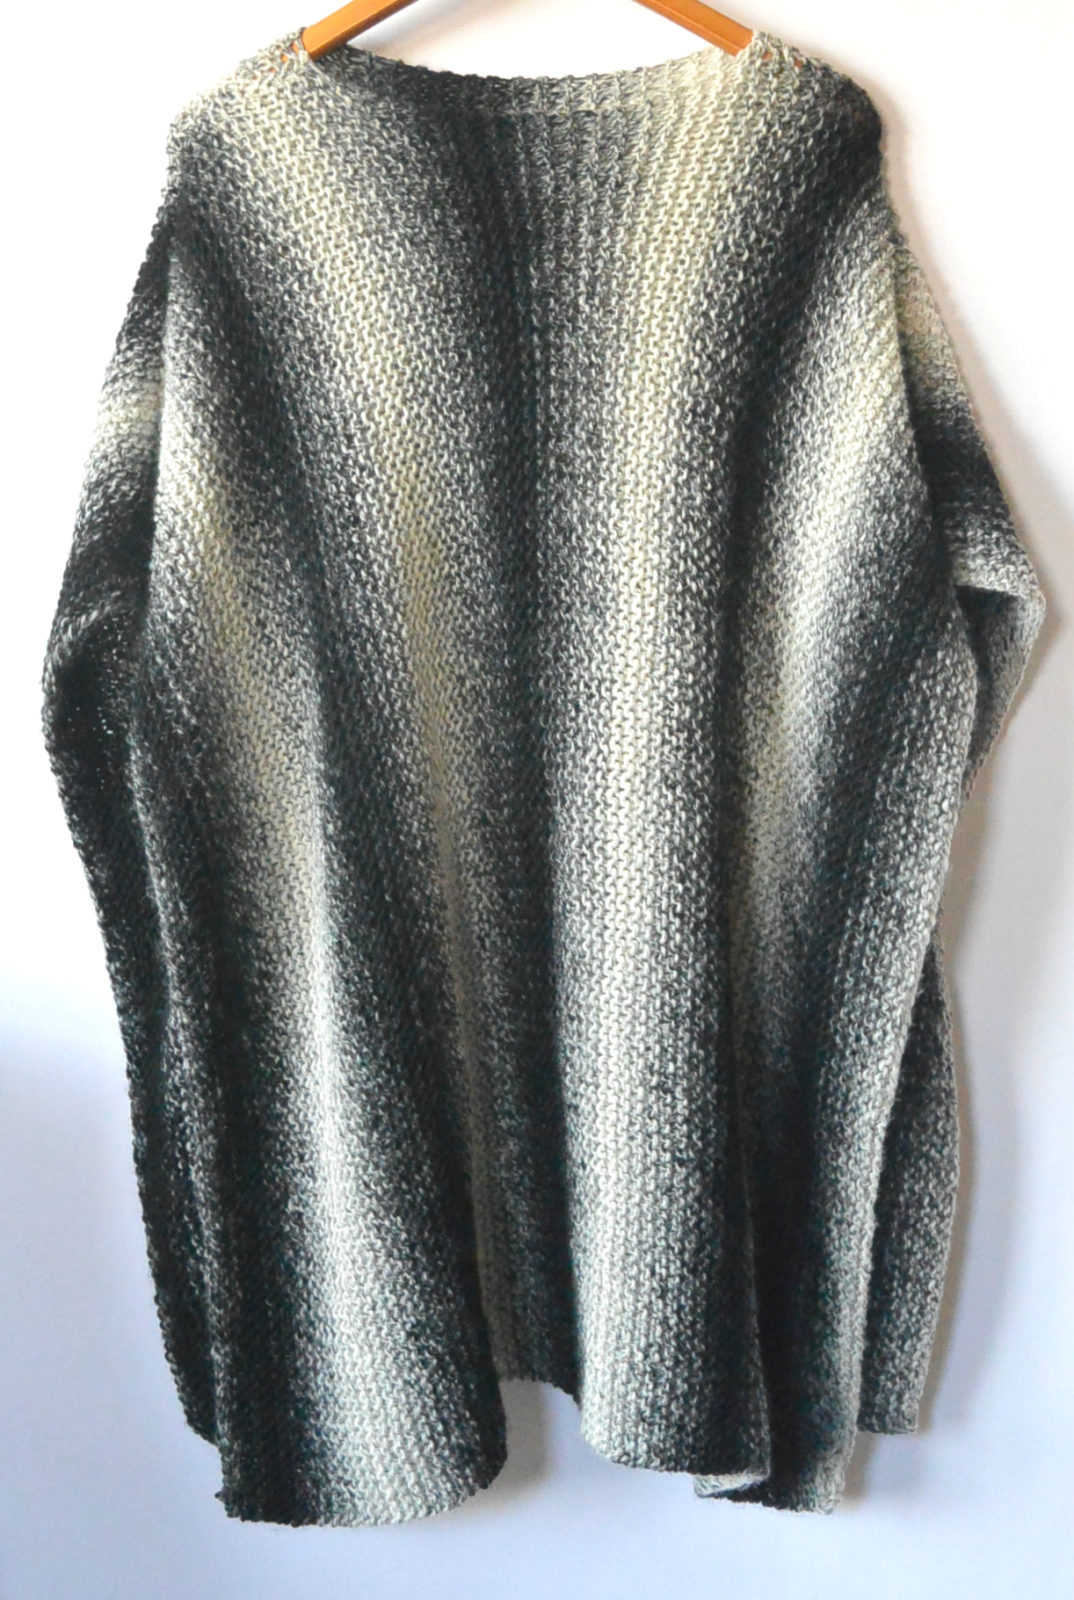 Aspen relaxed knit poncho pattern mama in a stitch this beginner friendly poncho has a beautiful drape and classic color combo making it a perfect piece to add style and comfort to any cold weather outfit bankloansurffo Gallery